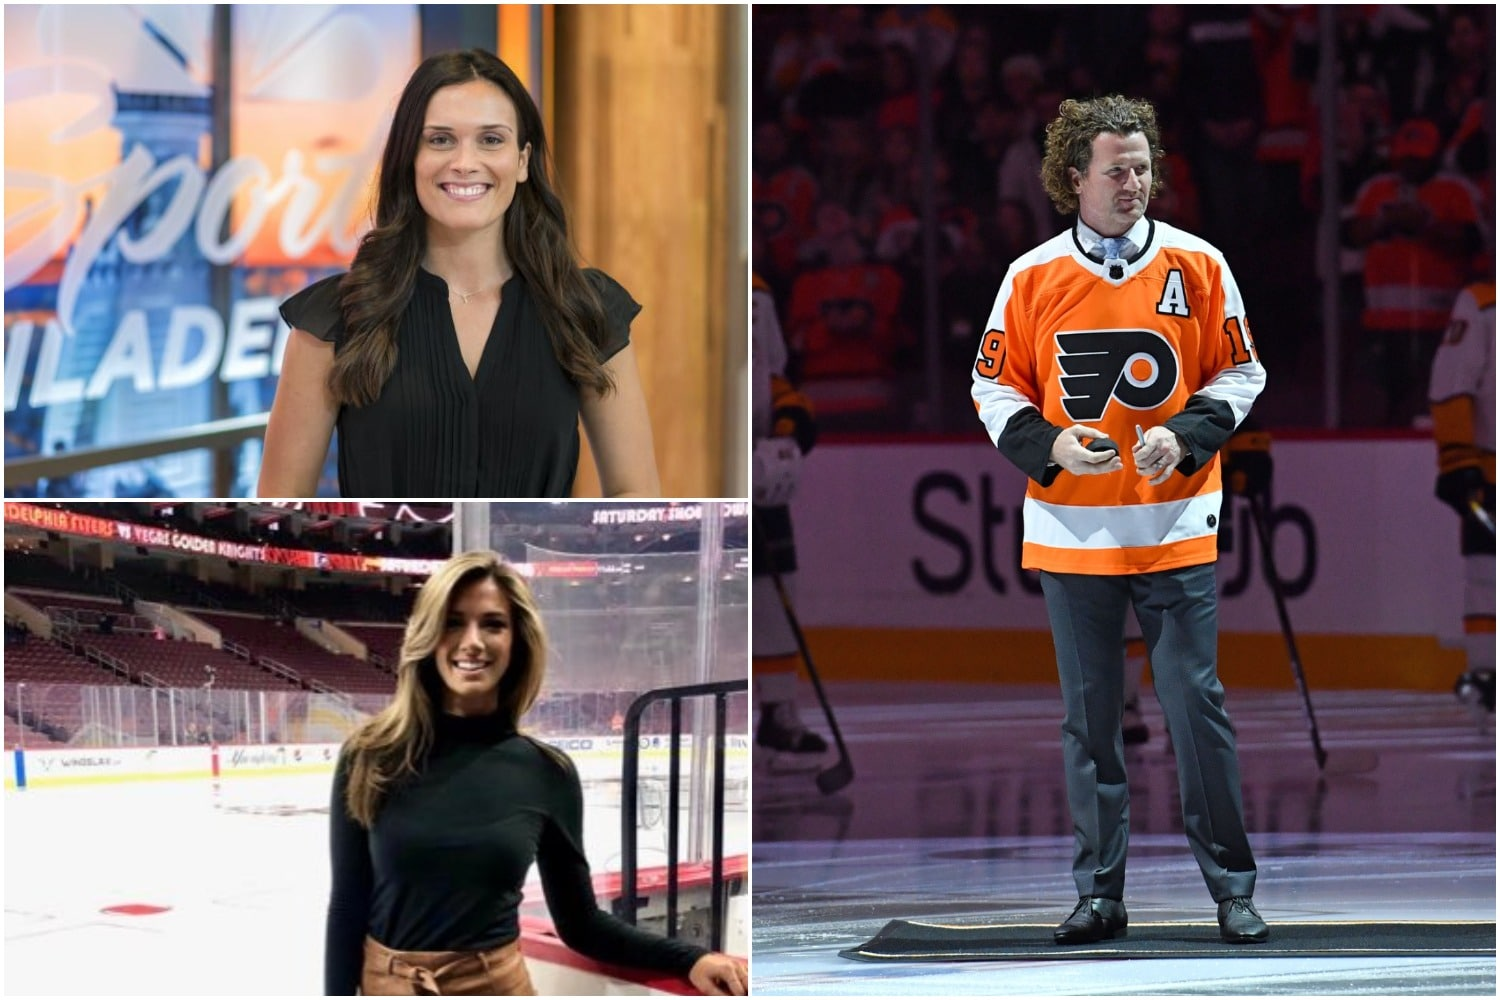 Big Changes Coming to Flyers Broadcast, with Katie Emmer Out, Scott Hartnell and Taryn Hatcher to the Desk